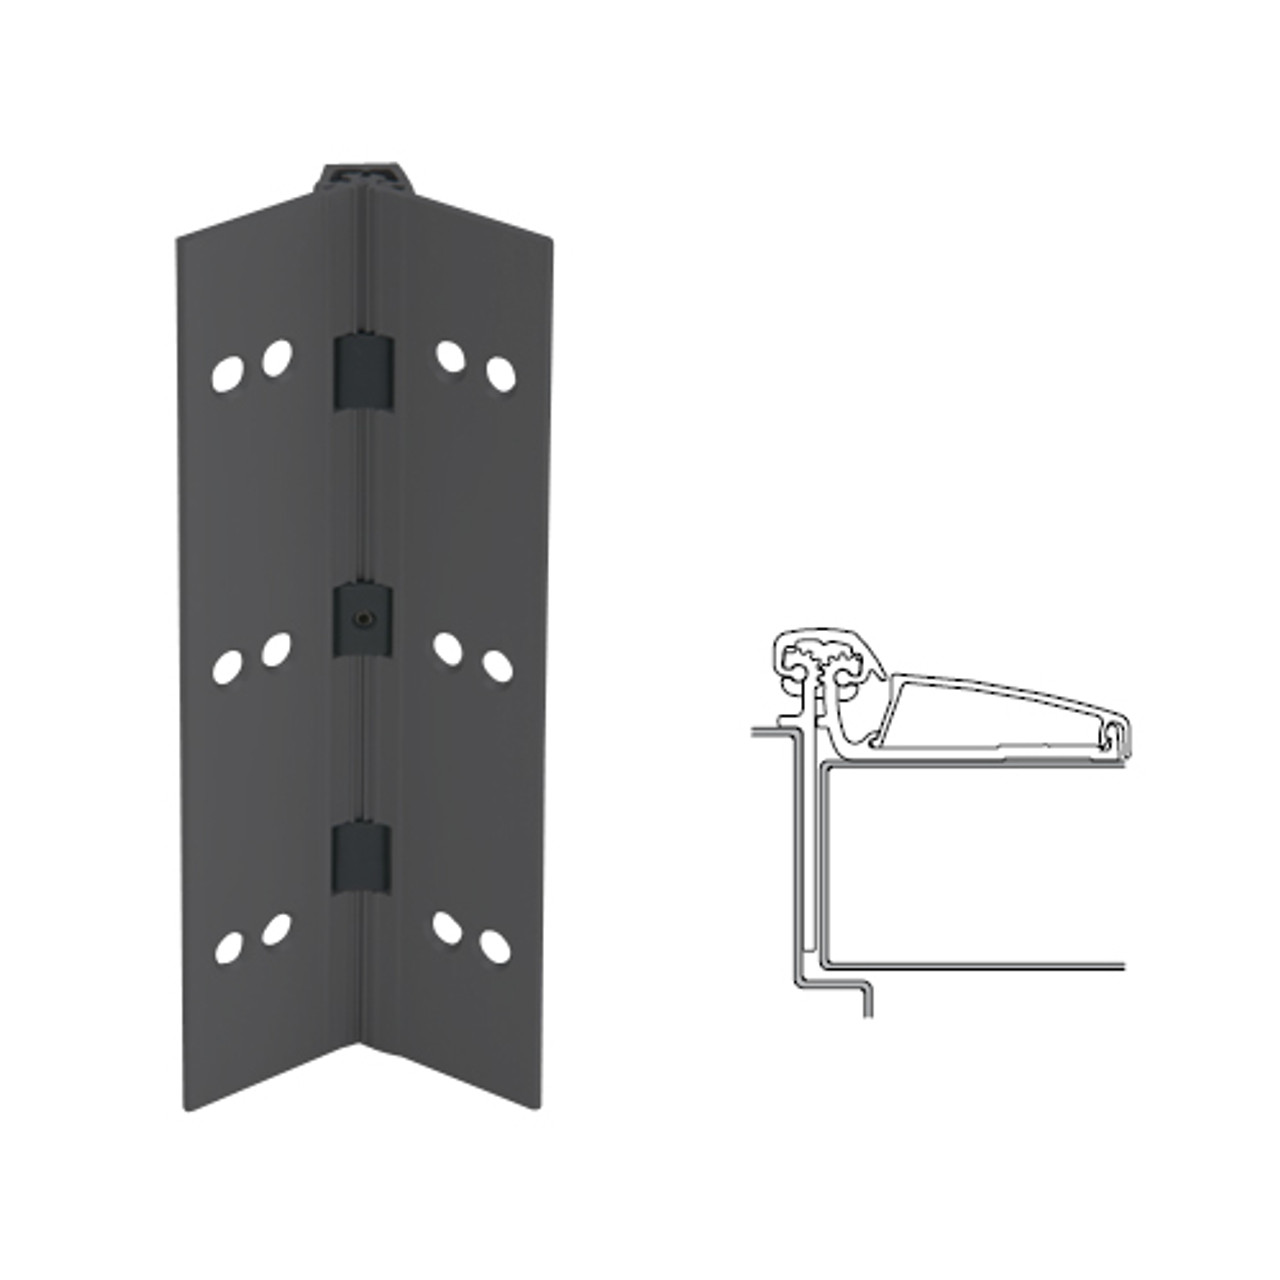 046XY-315AN-83 IVES Adjustable Half Surface Continuous Geared Hinges in Anodized Black